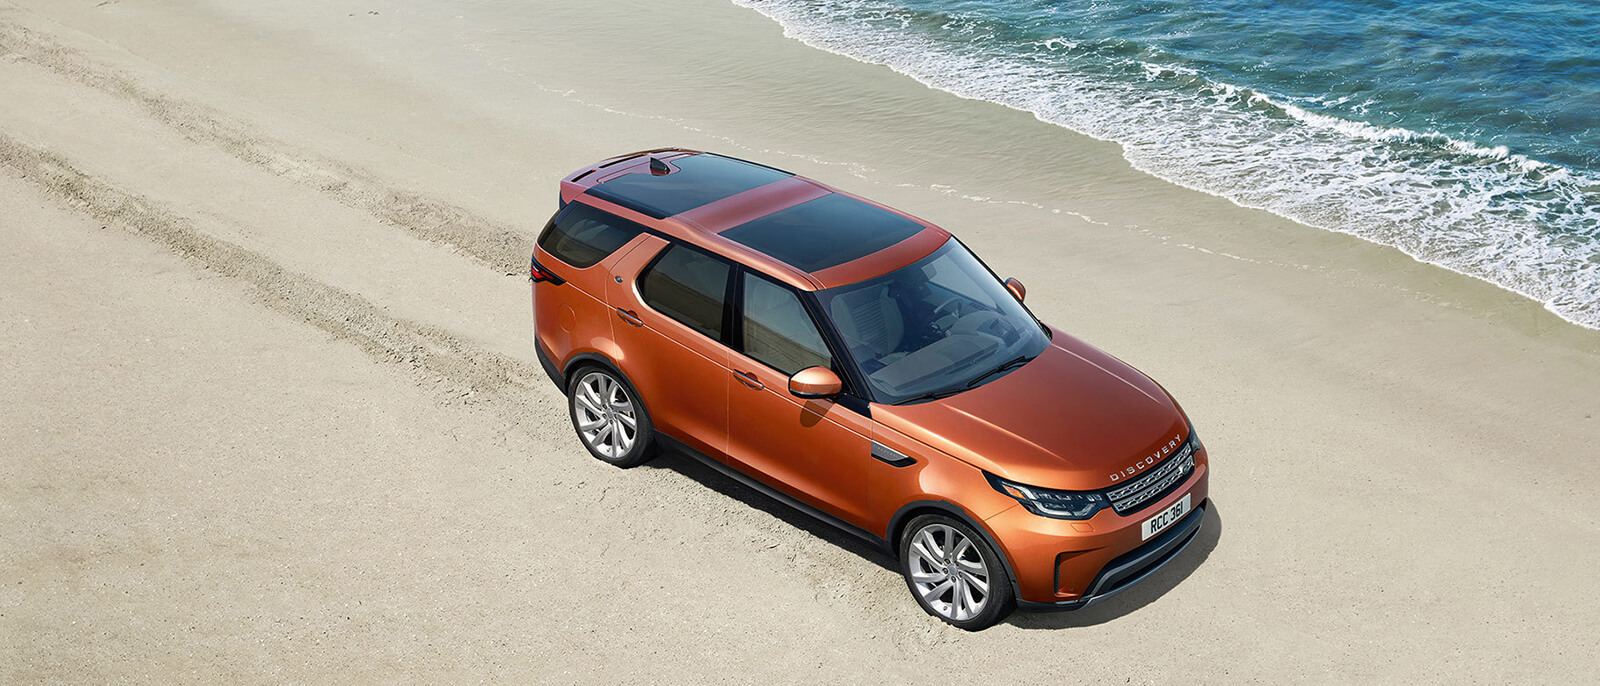 2017 Land Rover Discovery Beach